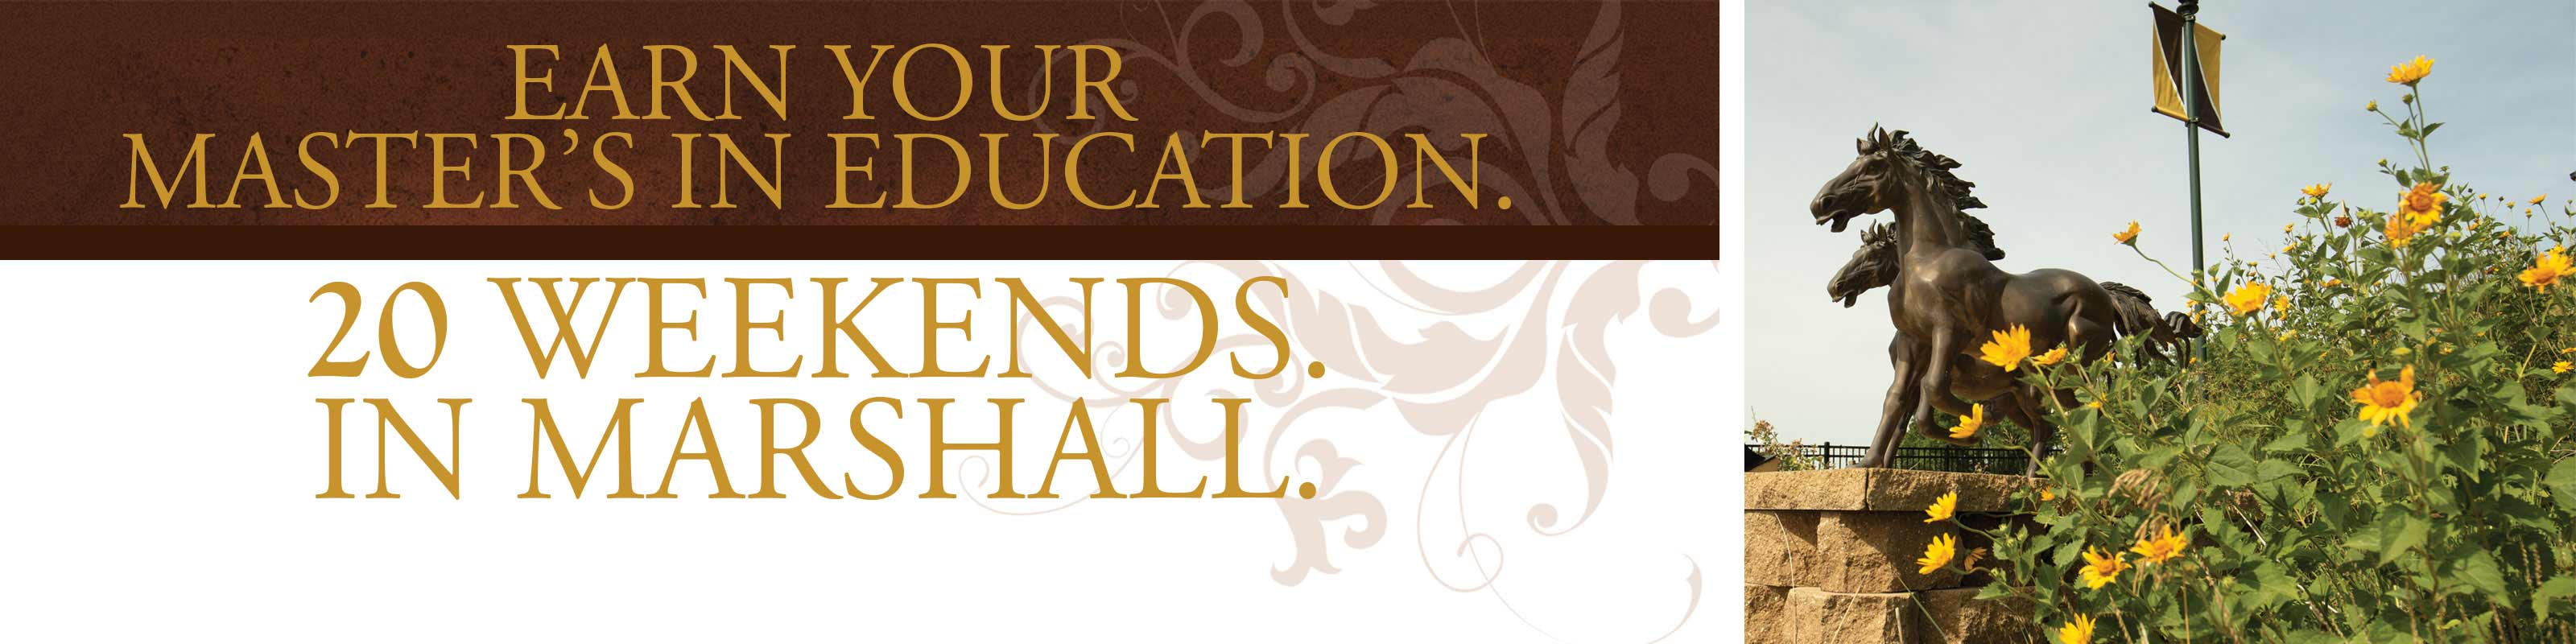 Earn Your Master's In Education. 20 Weekends. In Marshall.